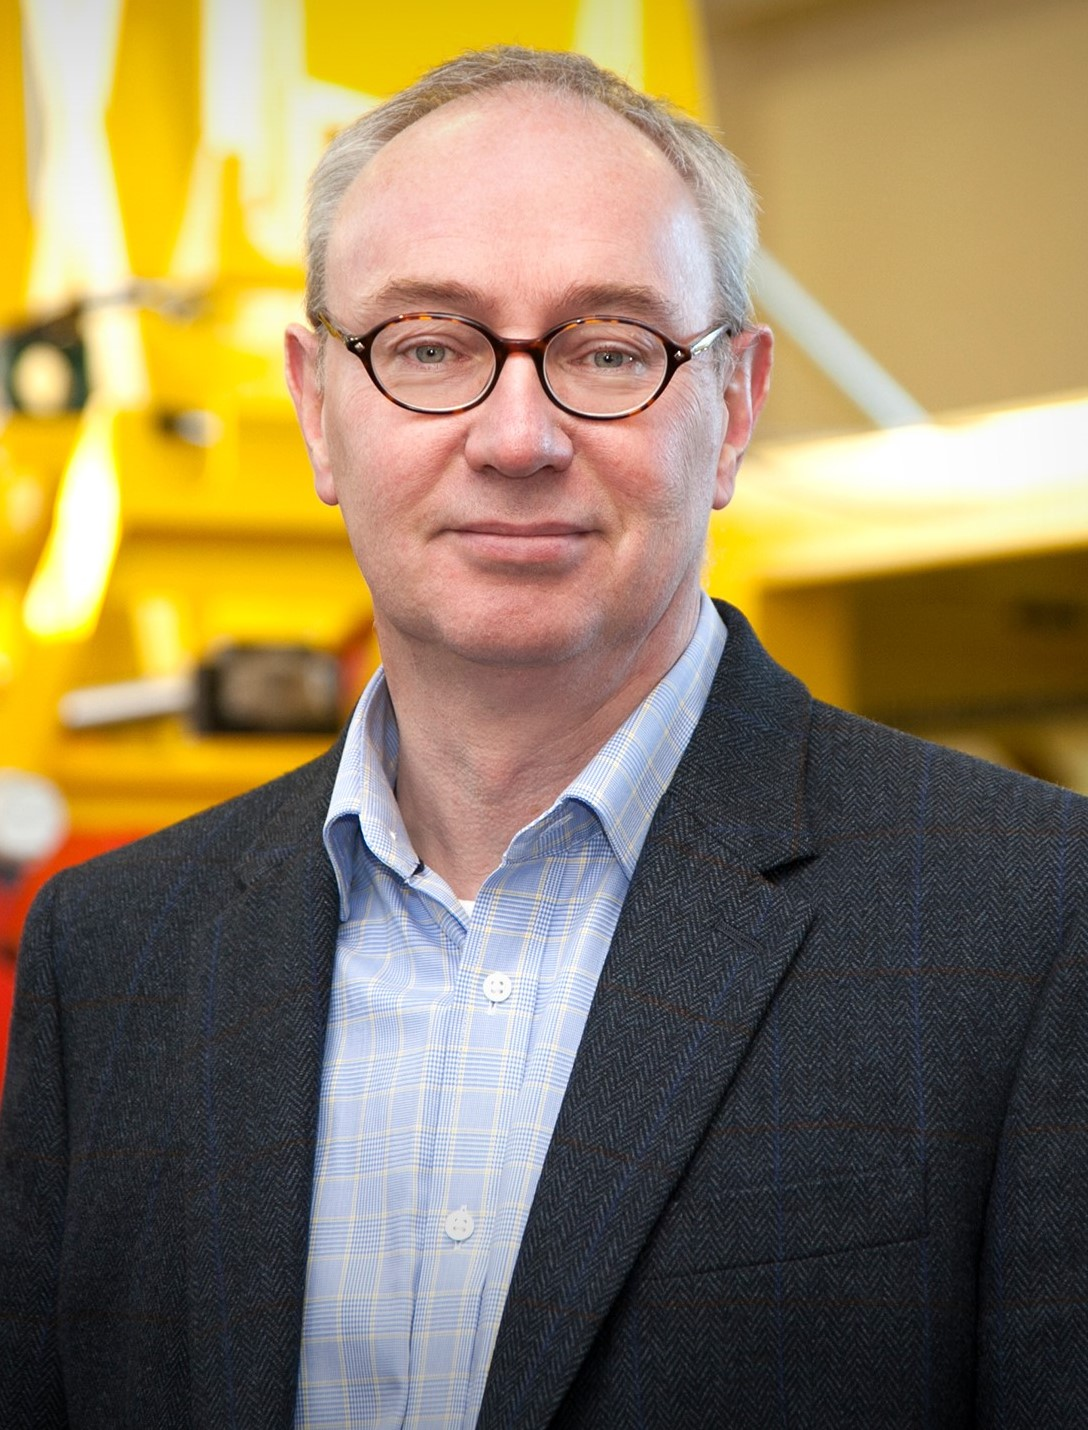 Leading energy firm appoints new CEO to drive new era of growth